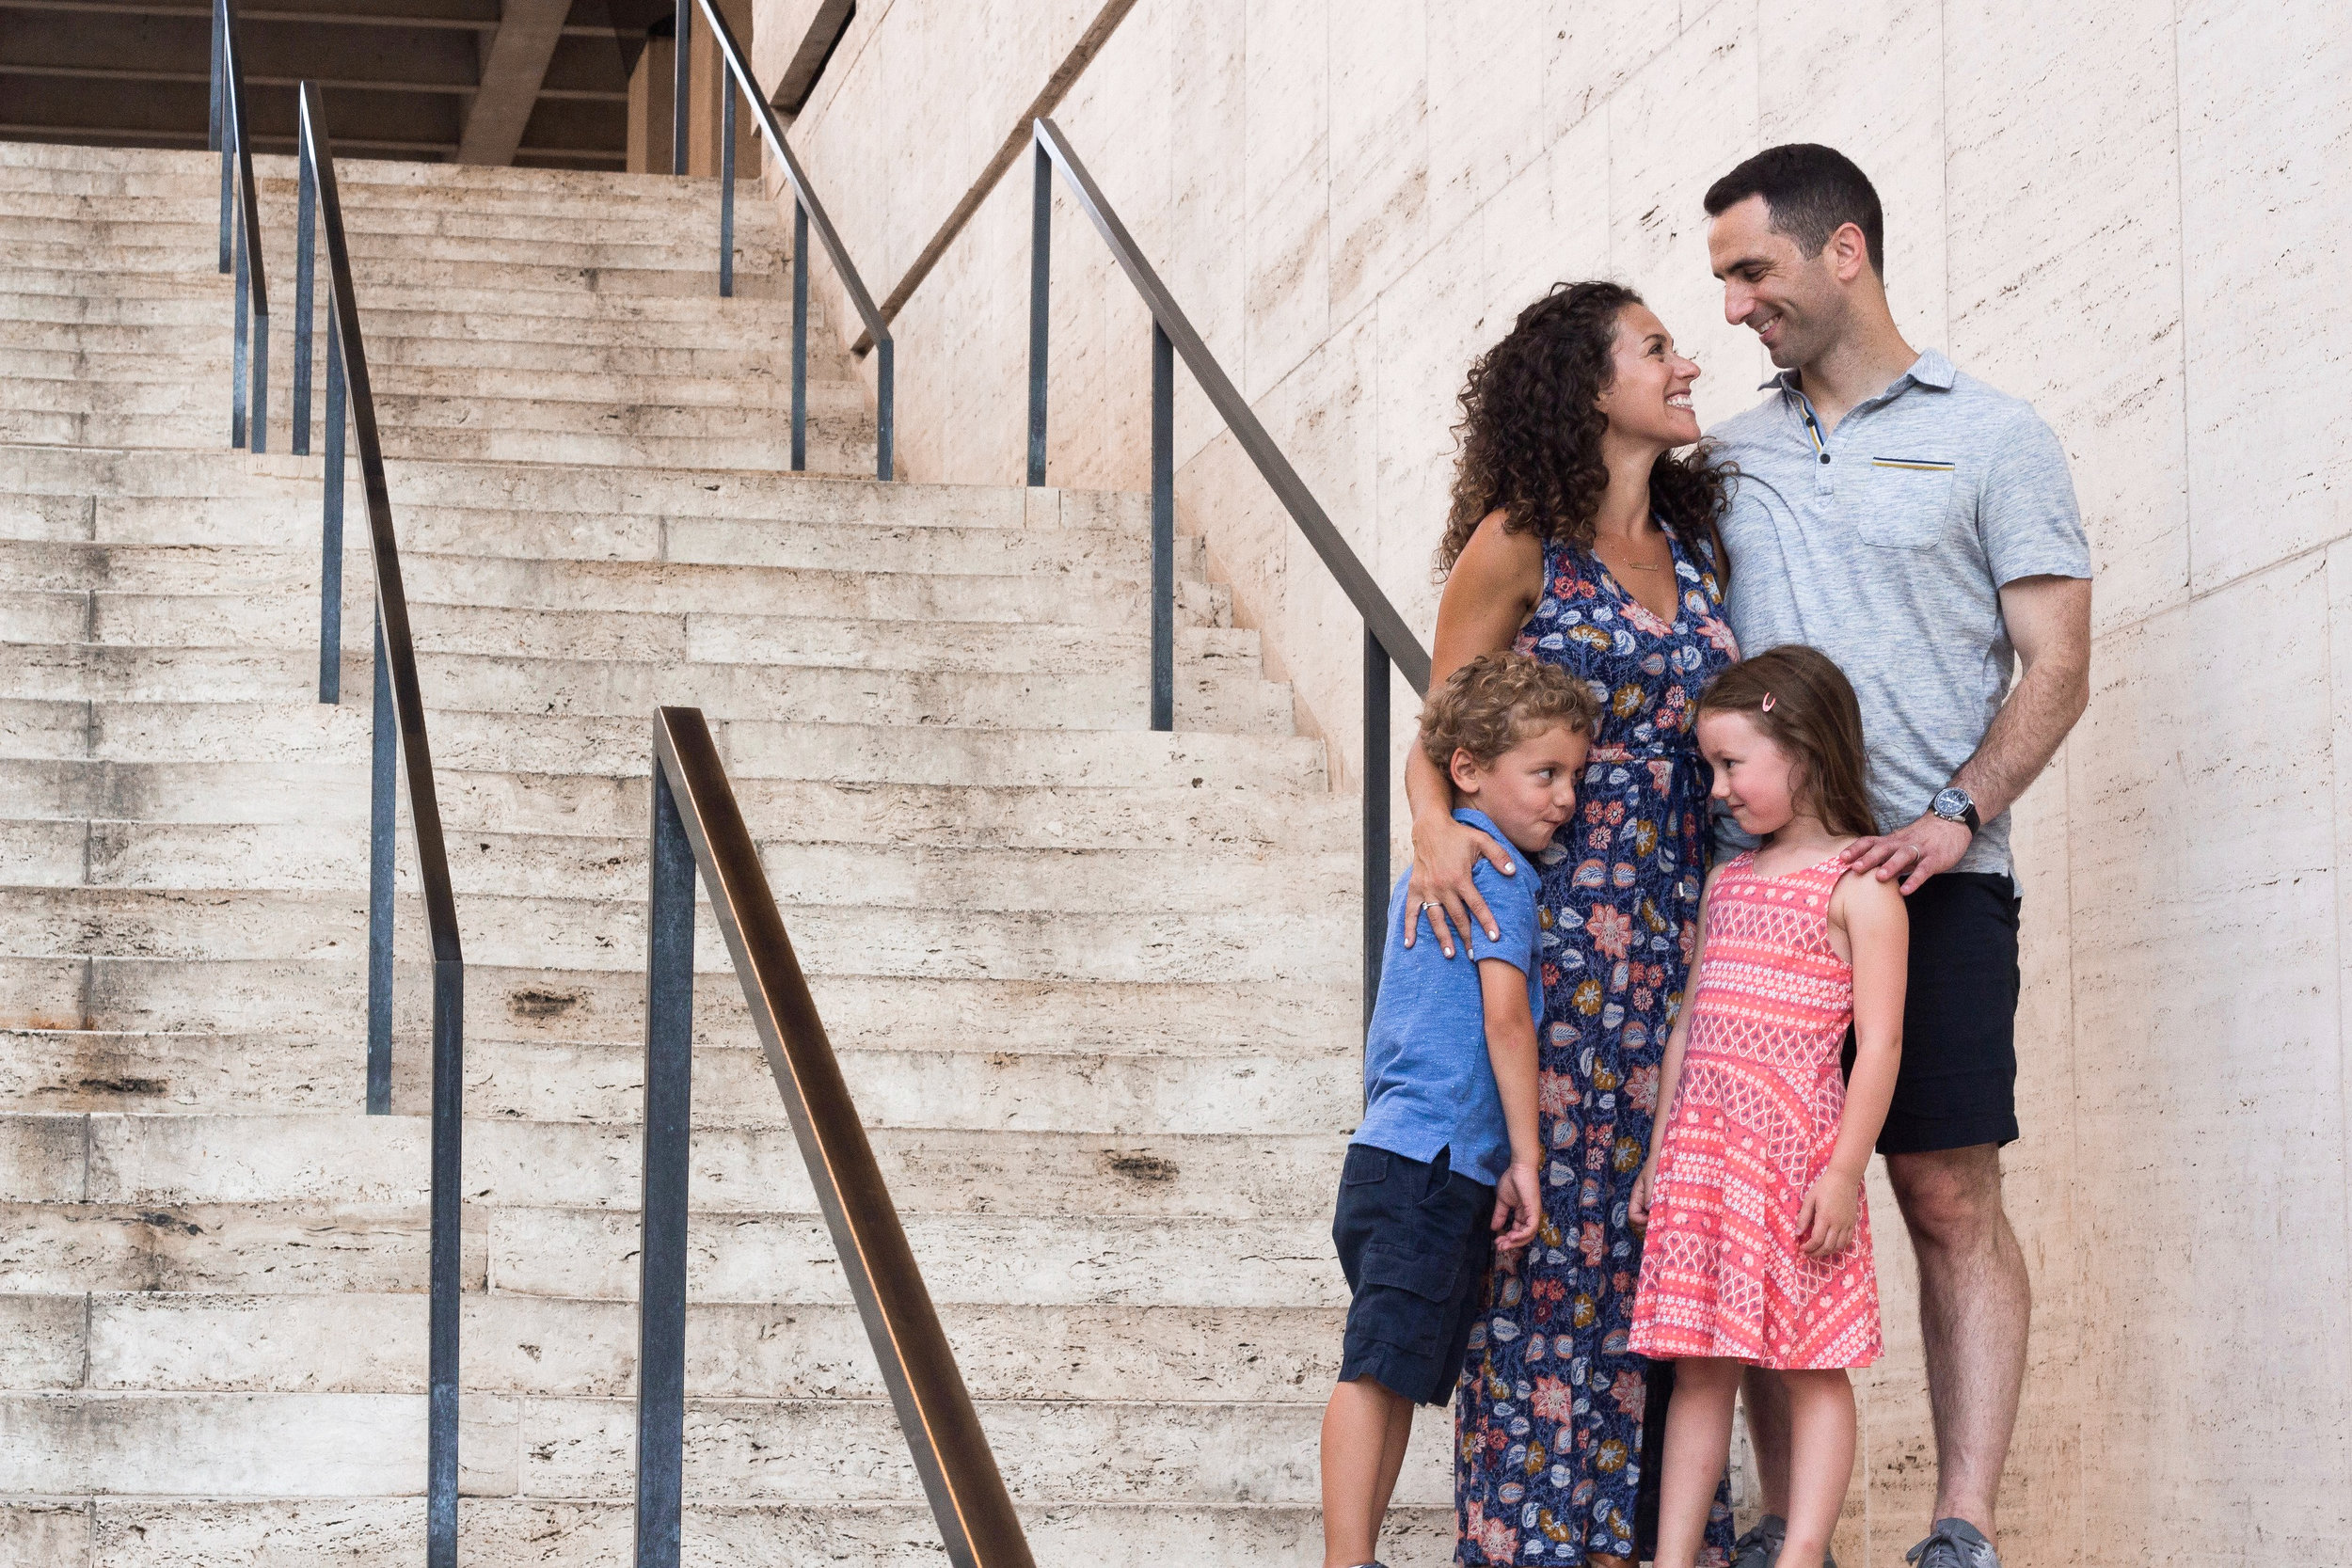 Family Session - Starting at $200 for 1 hour1 outfit and 1 locationChoice of 15 color images with B&W counterparts*Individual images included*additional images can be purchased at an extra cost.